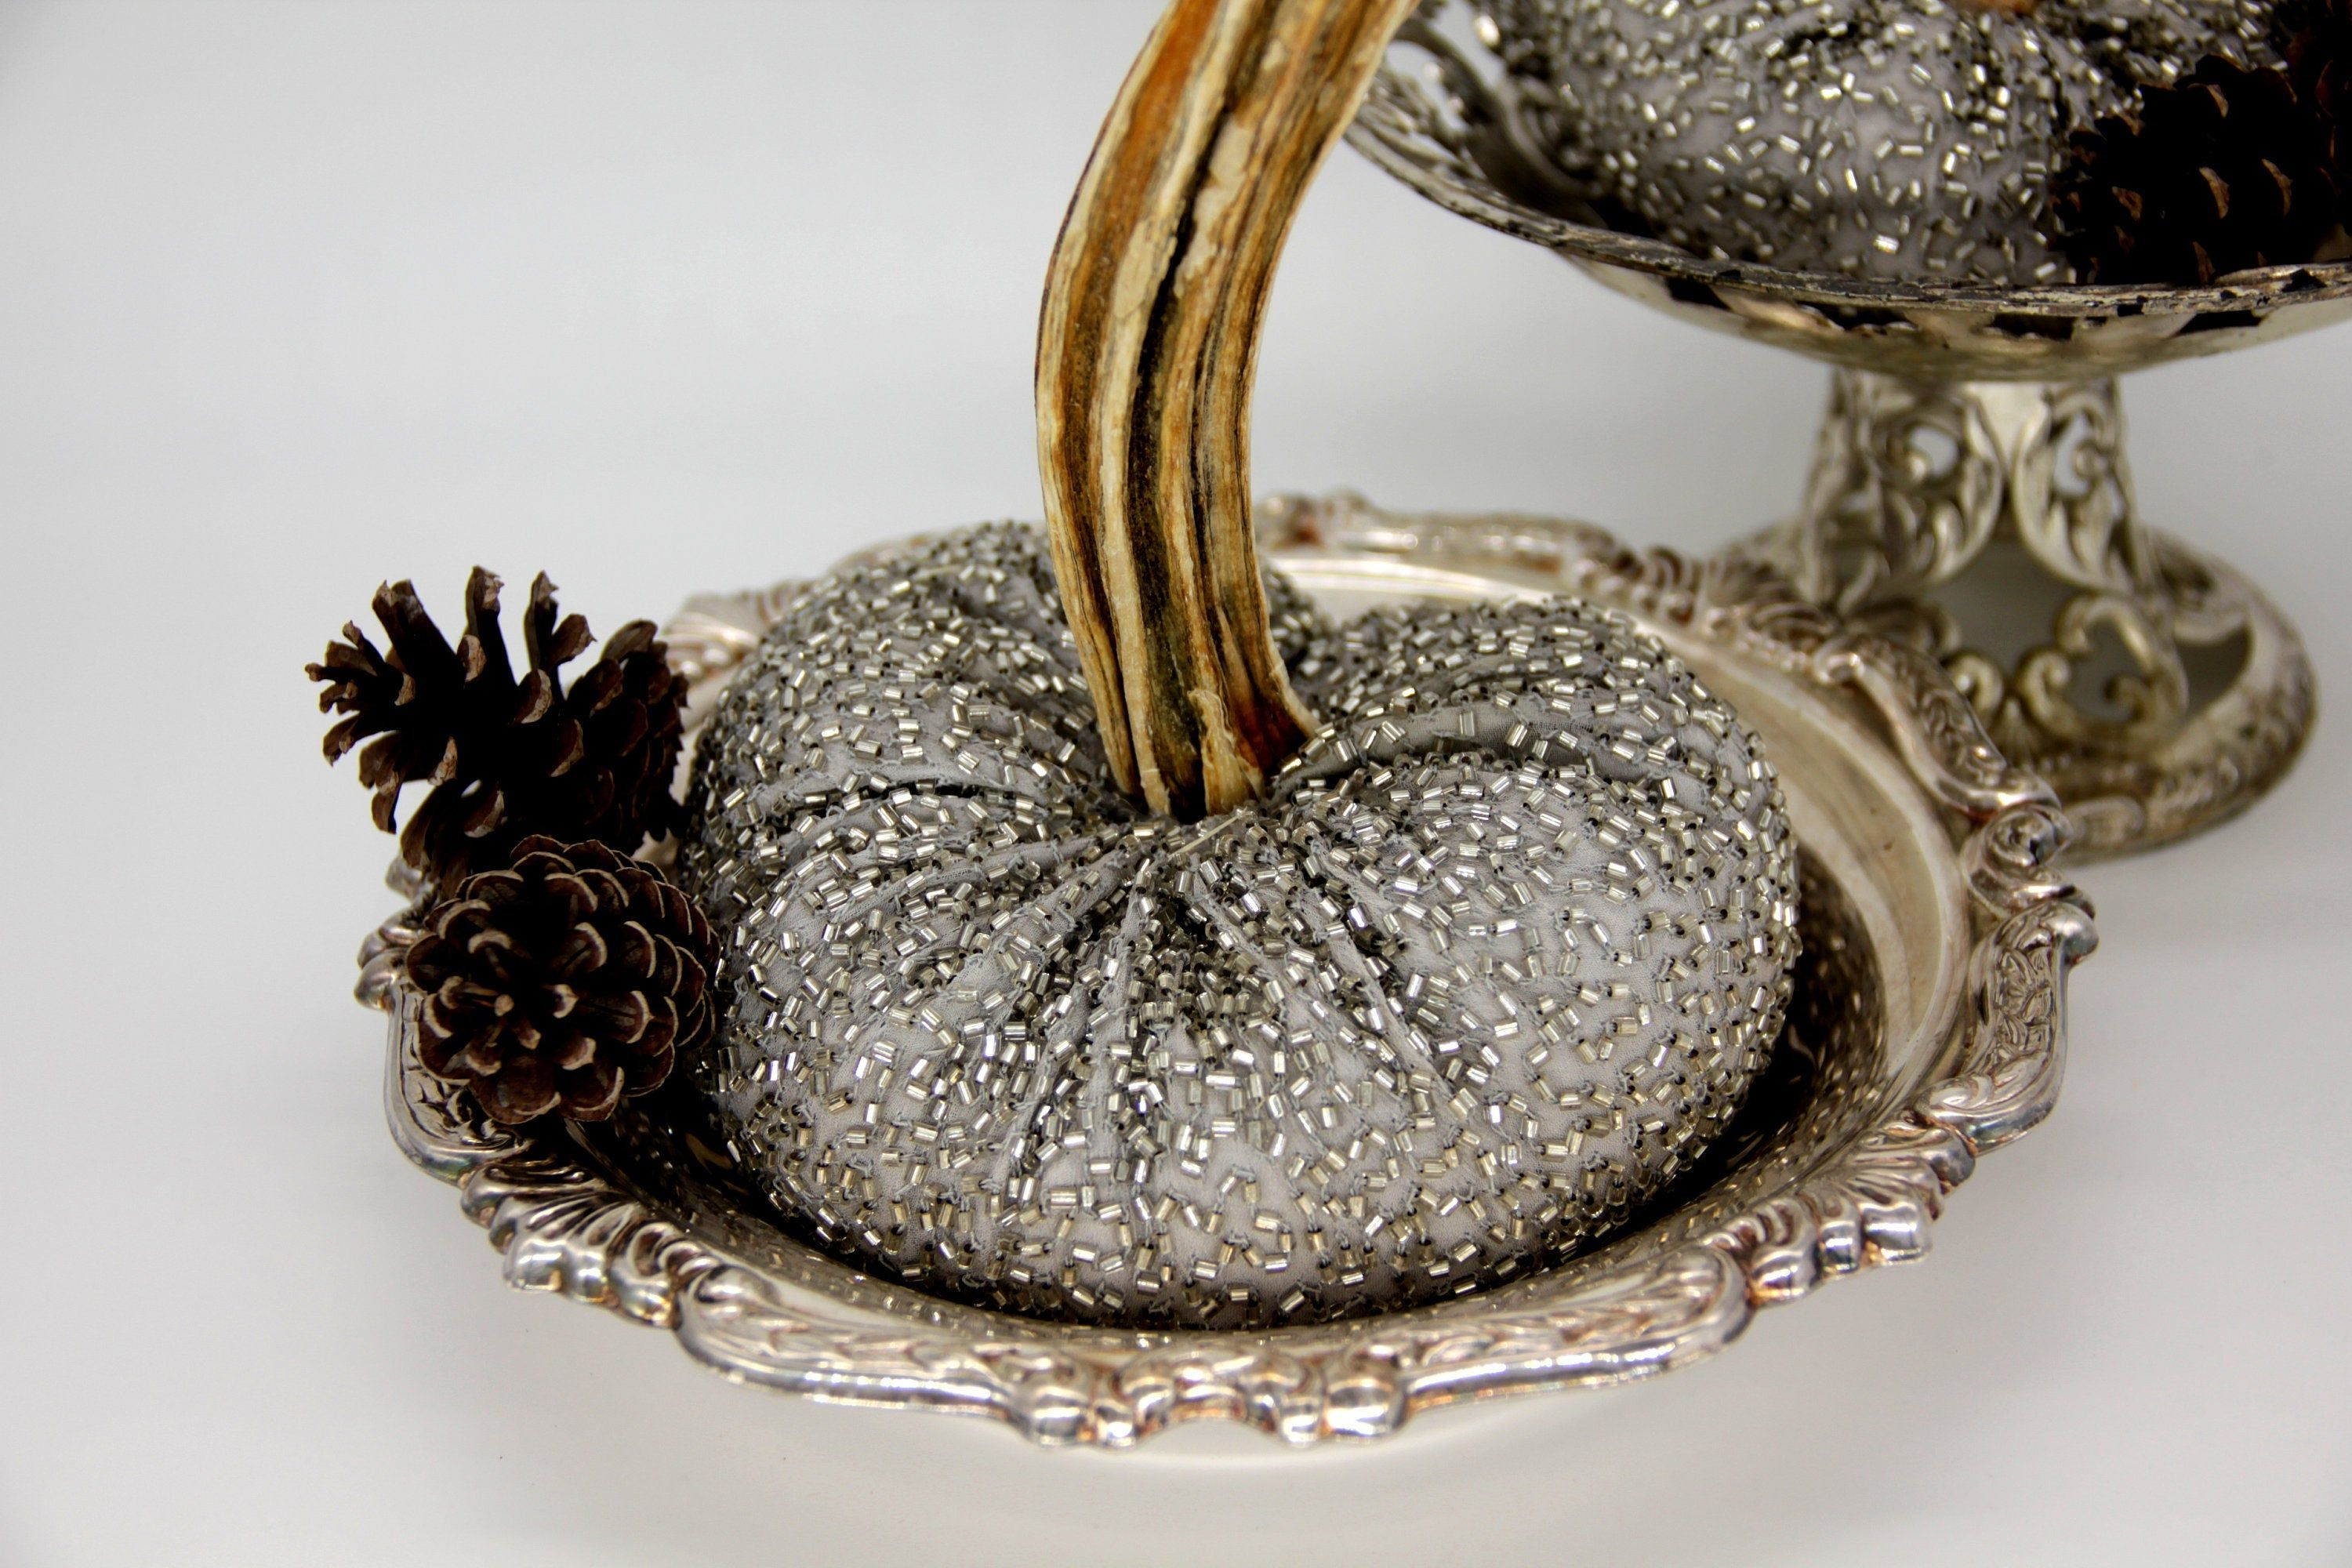 For The Elegant Look Silver On White Pumpkins White Pumpkins Cinderella Pumpkin Pumpkin Decorating